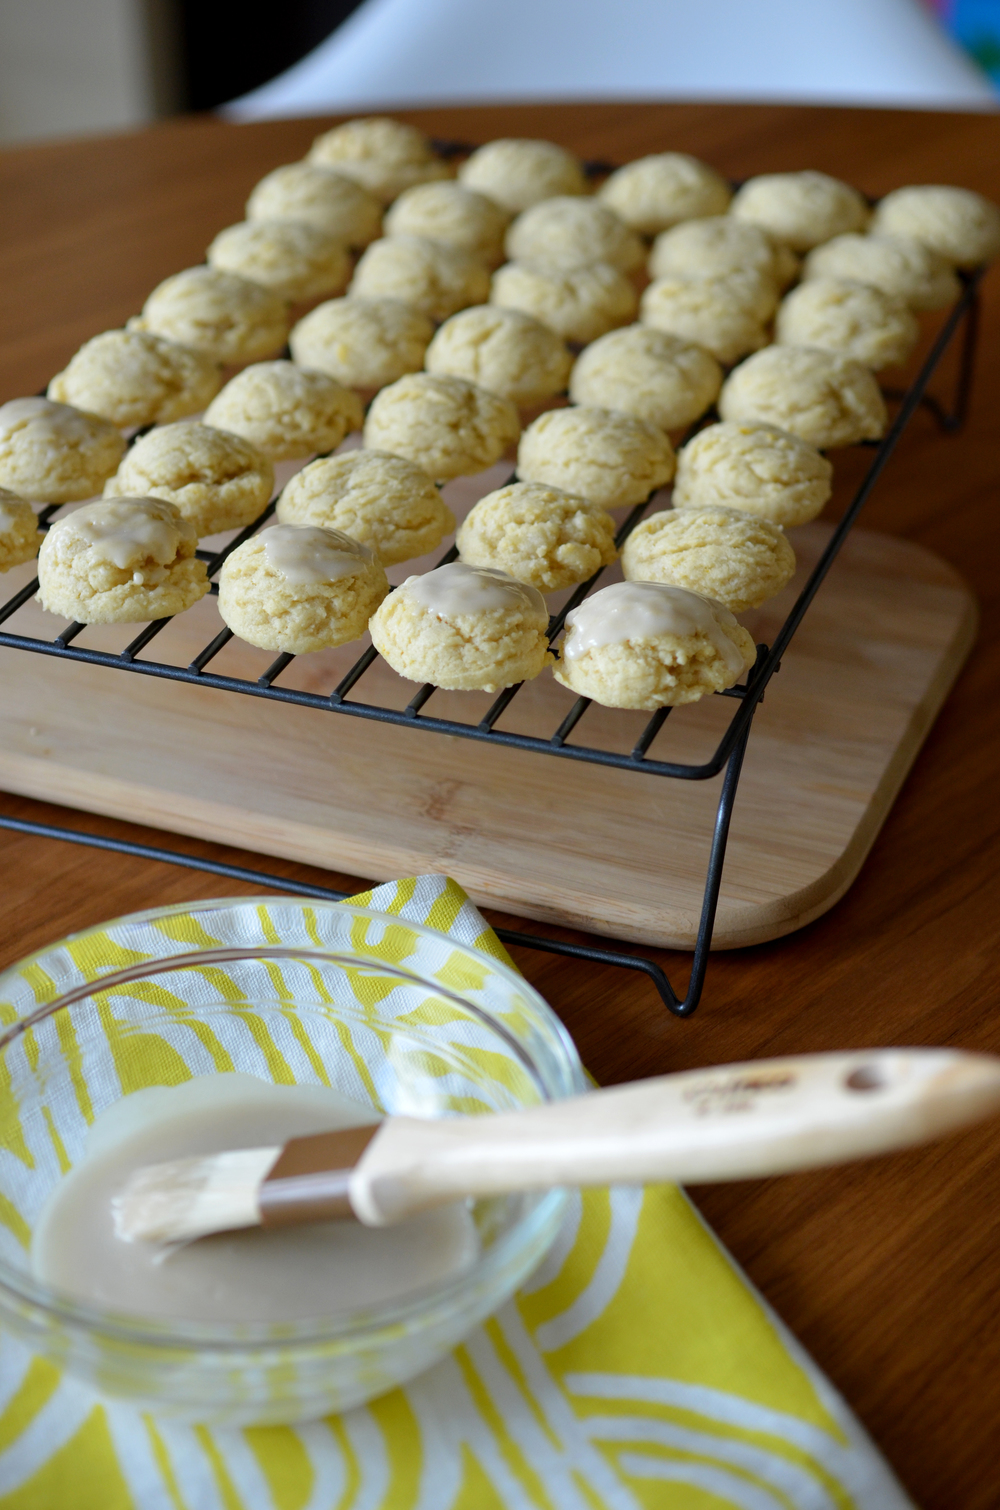 the magical glaze that finishes these cookies. go ahead, try to eat just one!